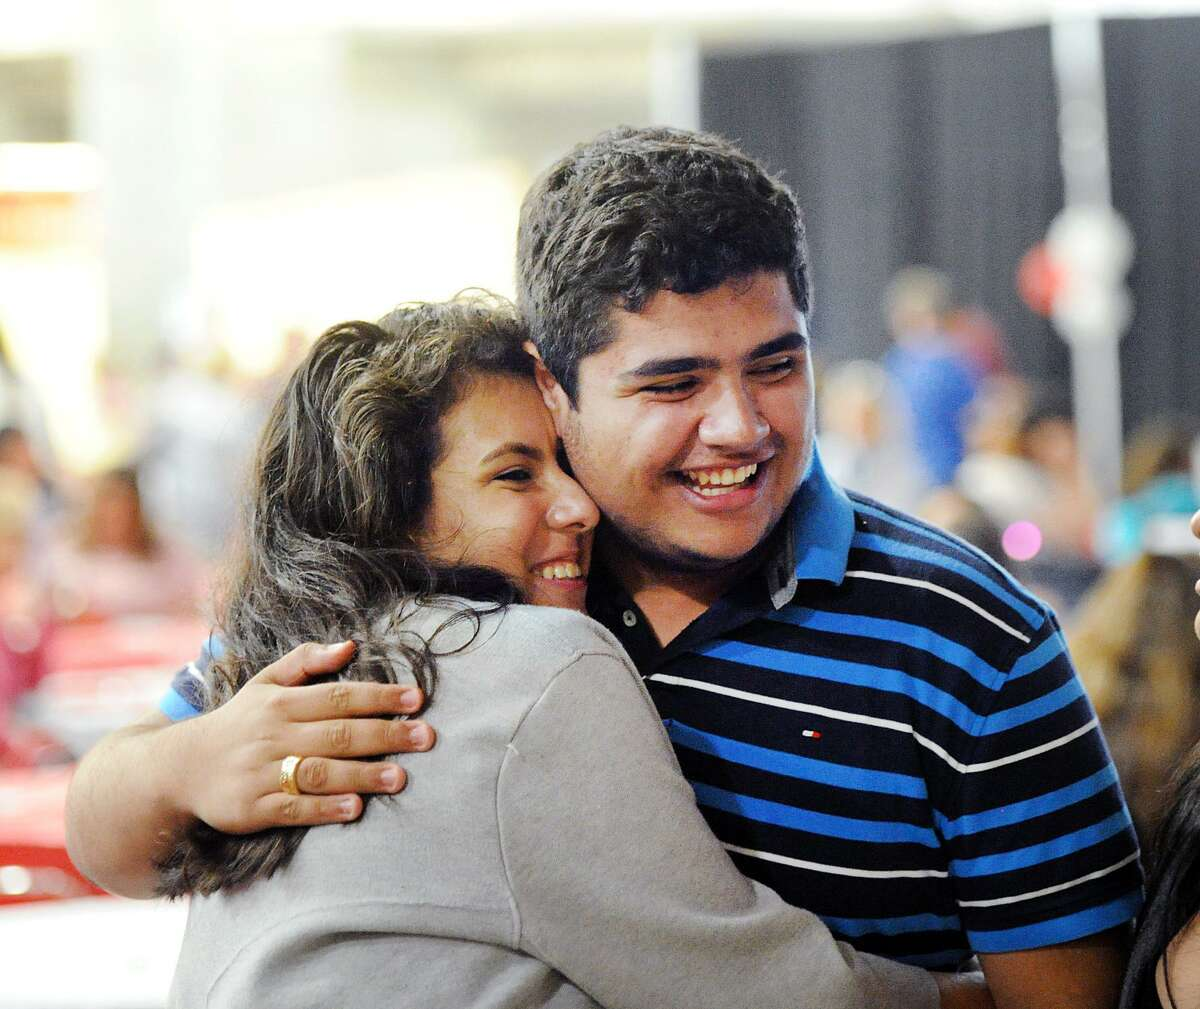 Ashley Balta, left, and Alvaro Jaramillo, both 17, embraced during their Greenwich High School AVID Graduation Ceremony in the student center at Greenwich High School, Conn., Wednesday, June 13, 2018. Balta said she will be attending the University of Connecticut and Jaramillo said he will attend the University of Scranton. The Advancement Via Individual Determination program (AVID), targets students in the academic middle and mentors them throughout their school years to prepare them for college. Forty-four Greenwich High School seniors graduated from the program.